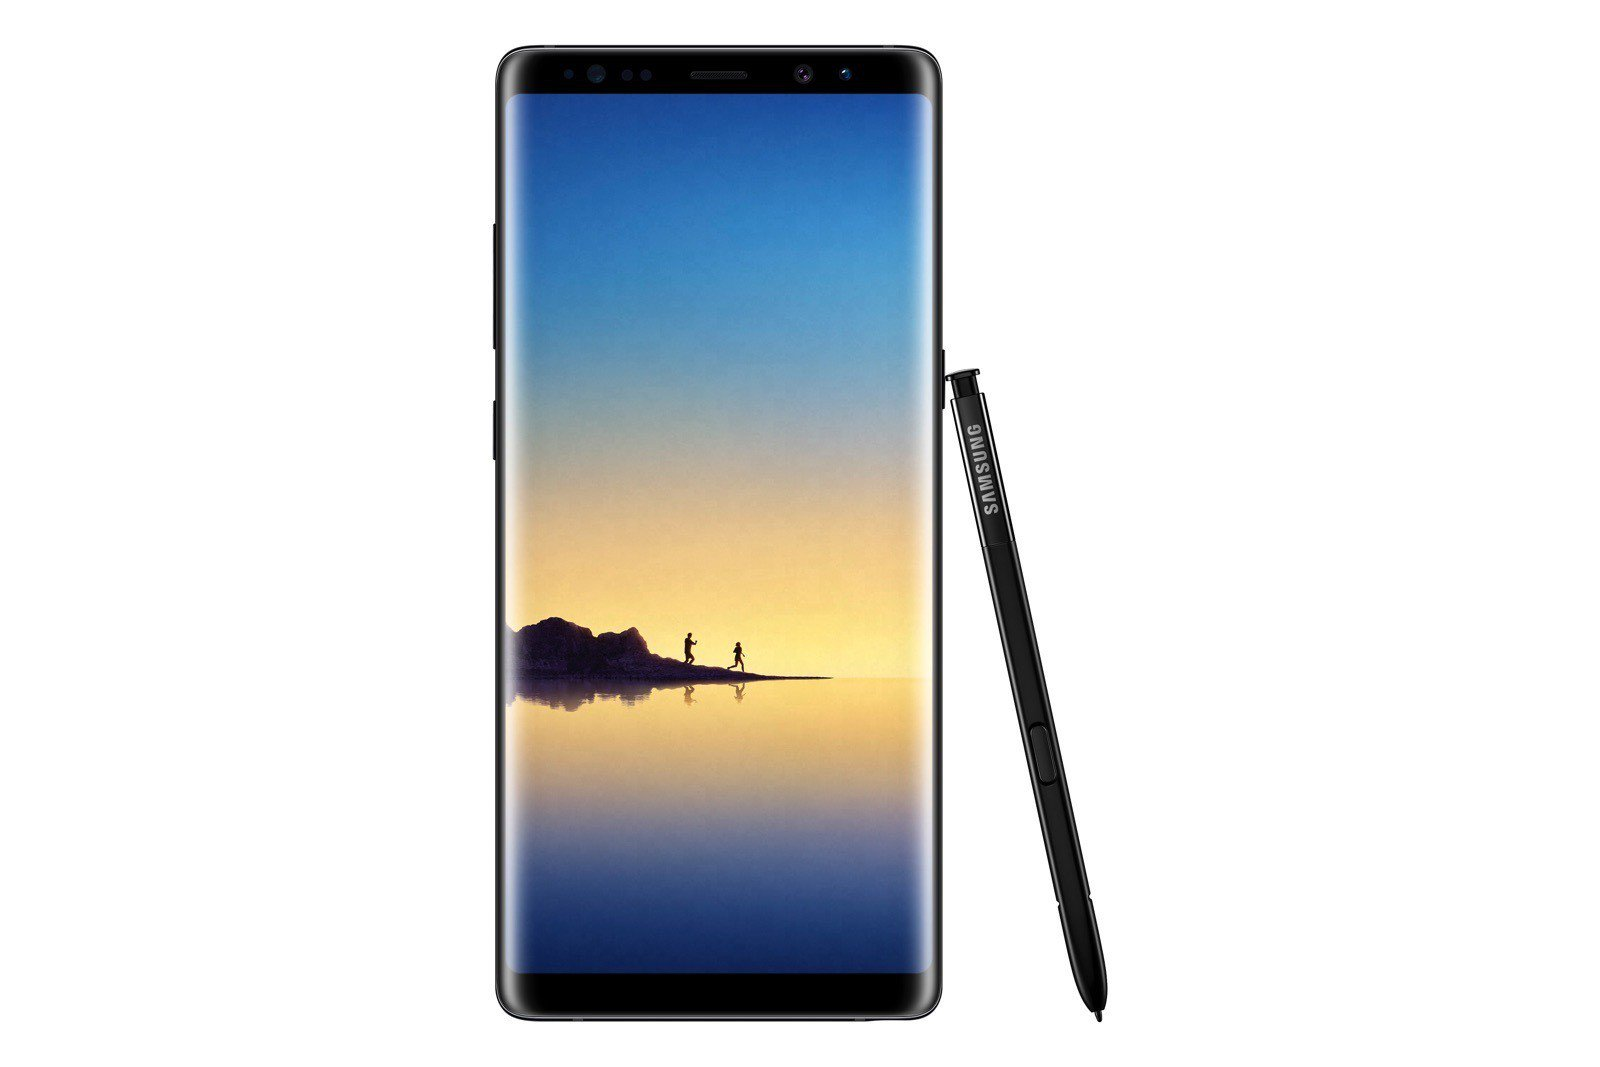 Nuovo samsung galaxy note 8 immagini video for Nuovo galaxy note 8